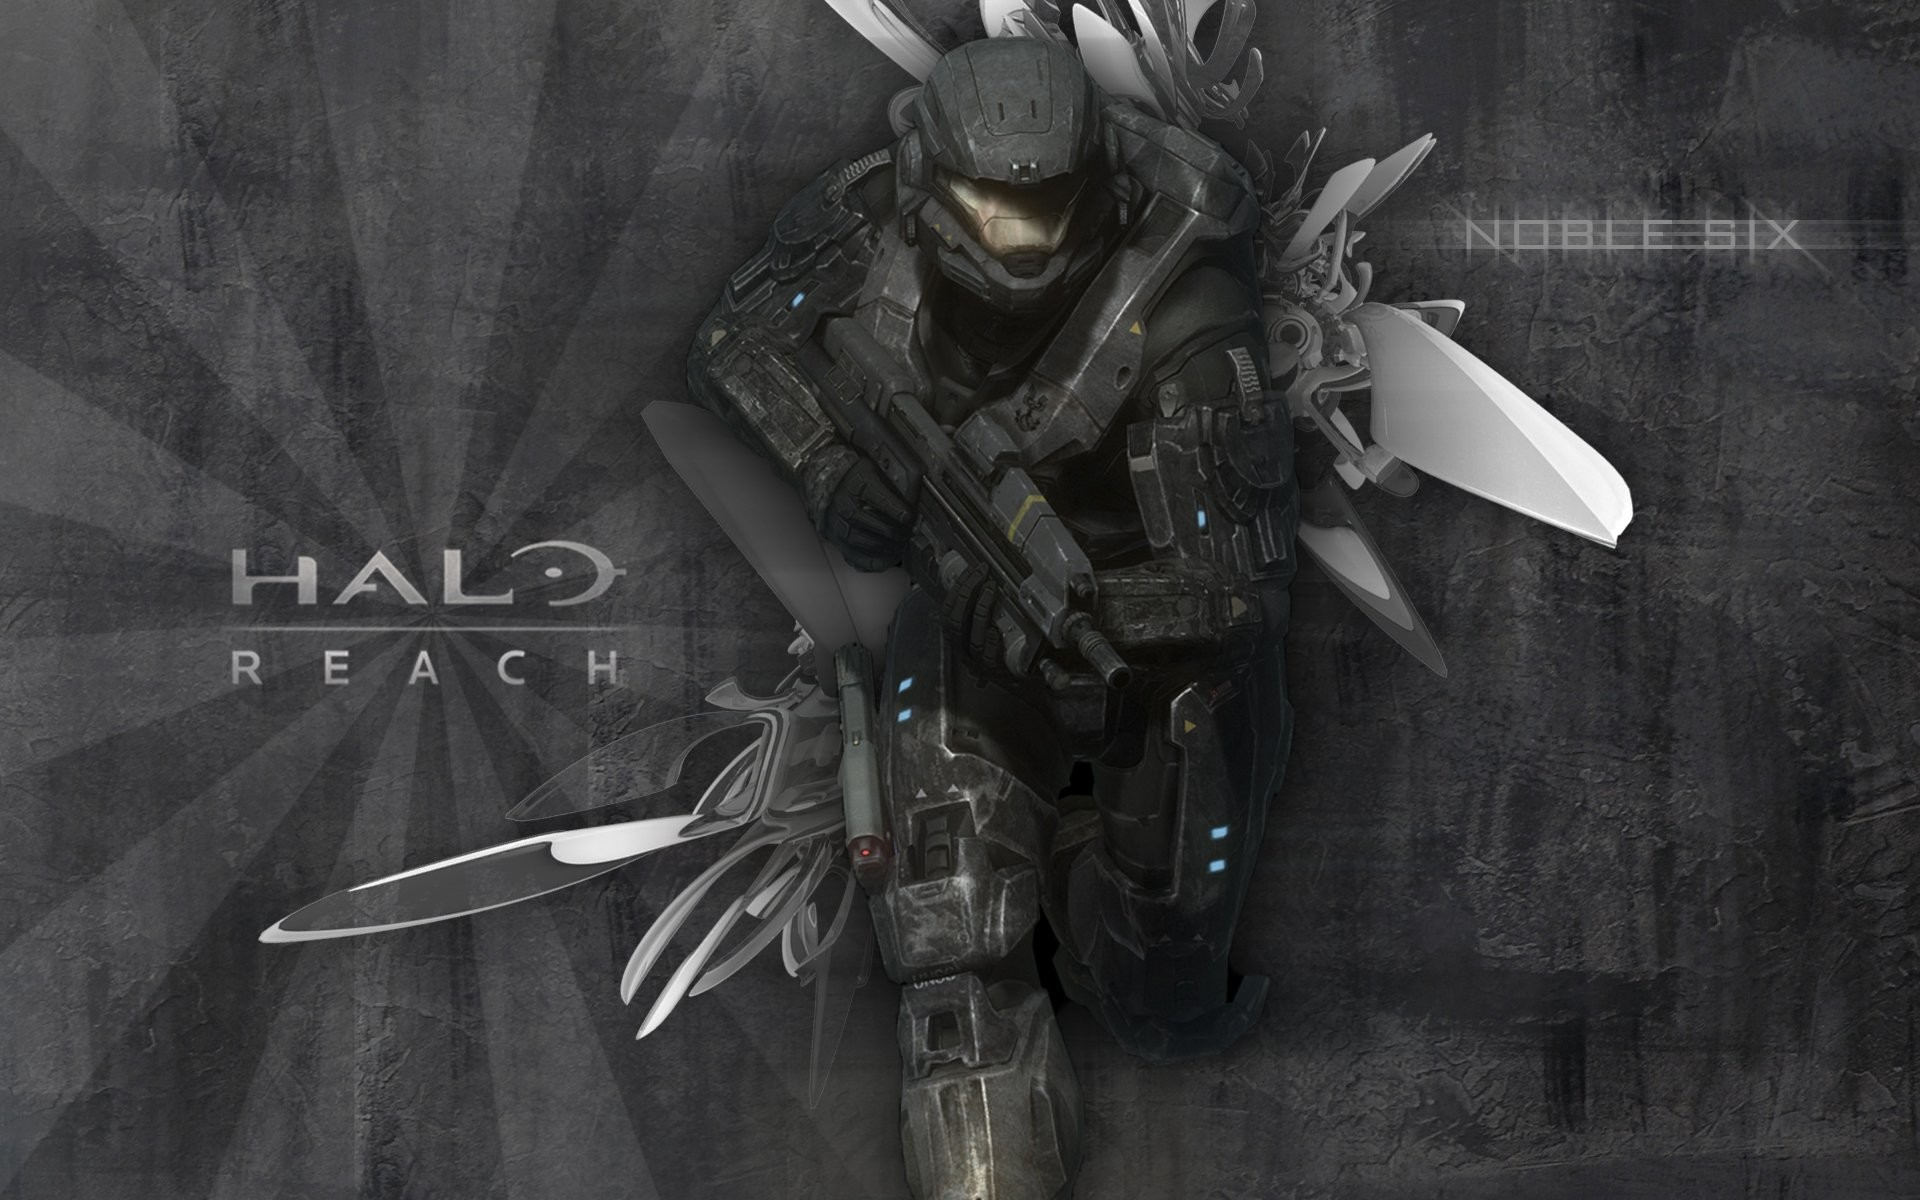 1920x1200 halo-reach-backgrounds-1920×1200-windows-10-WTG3052189